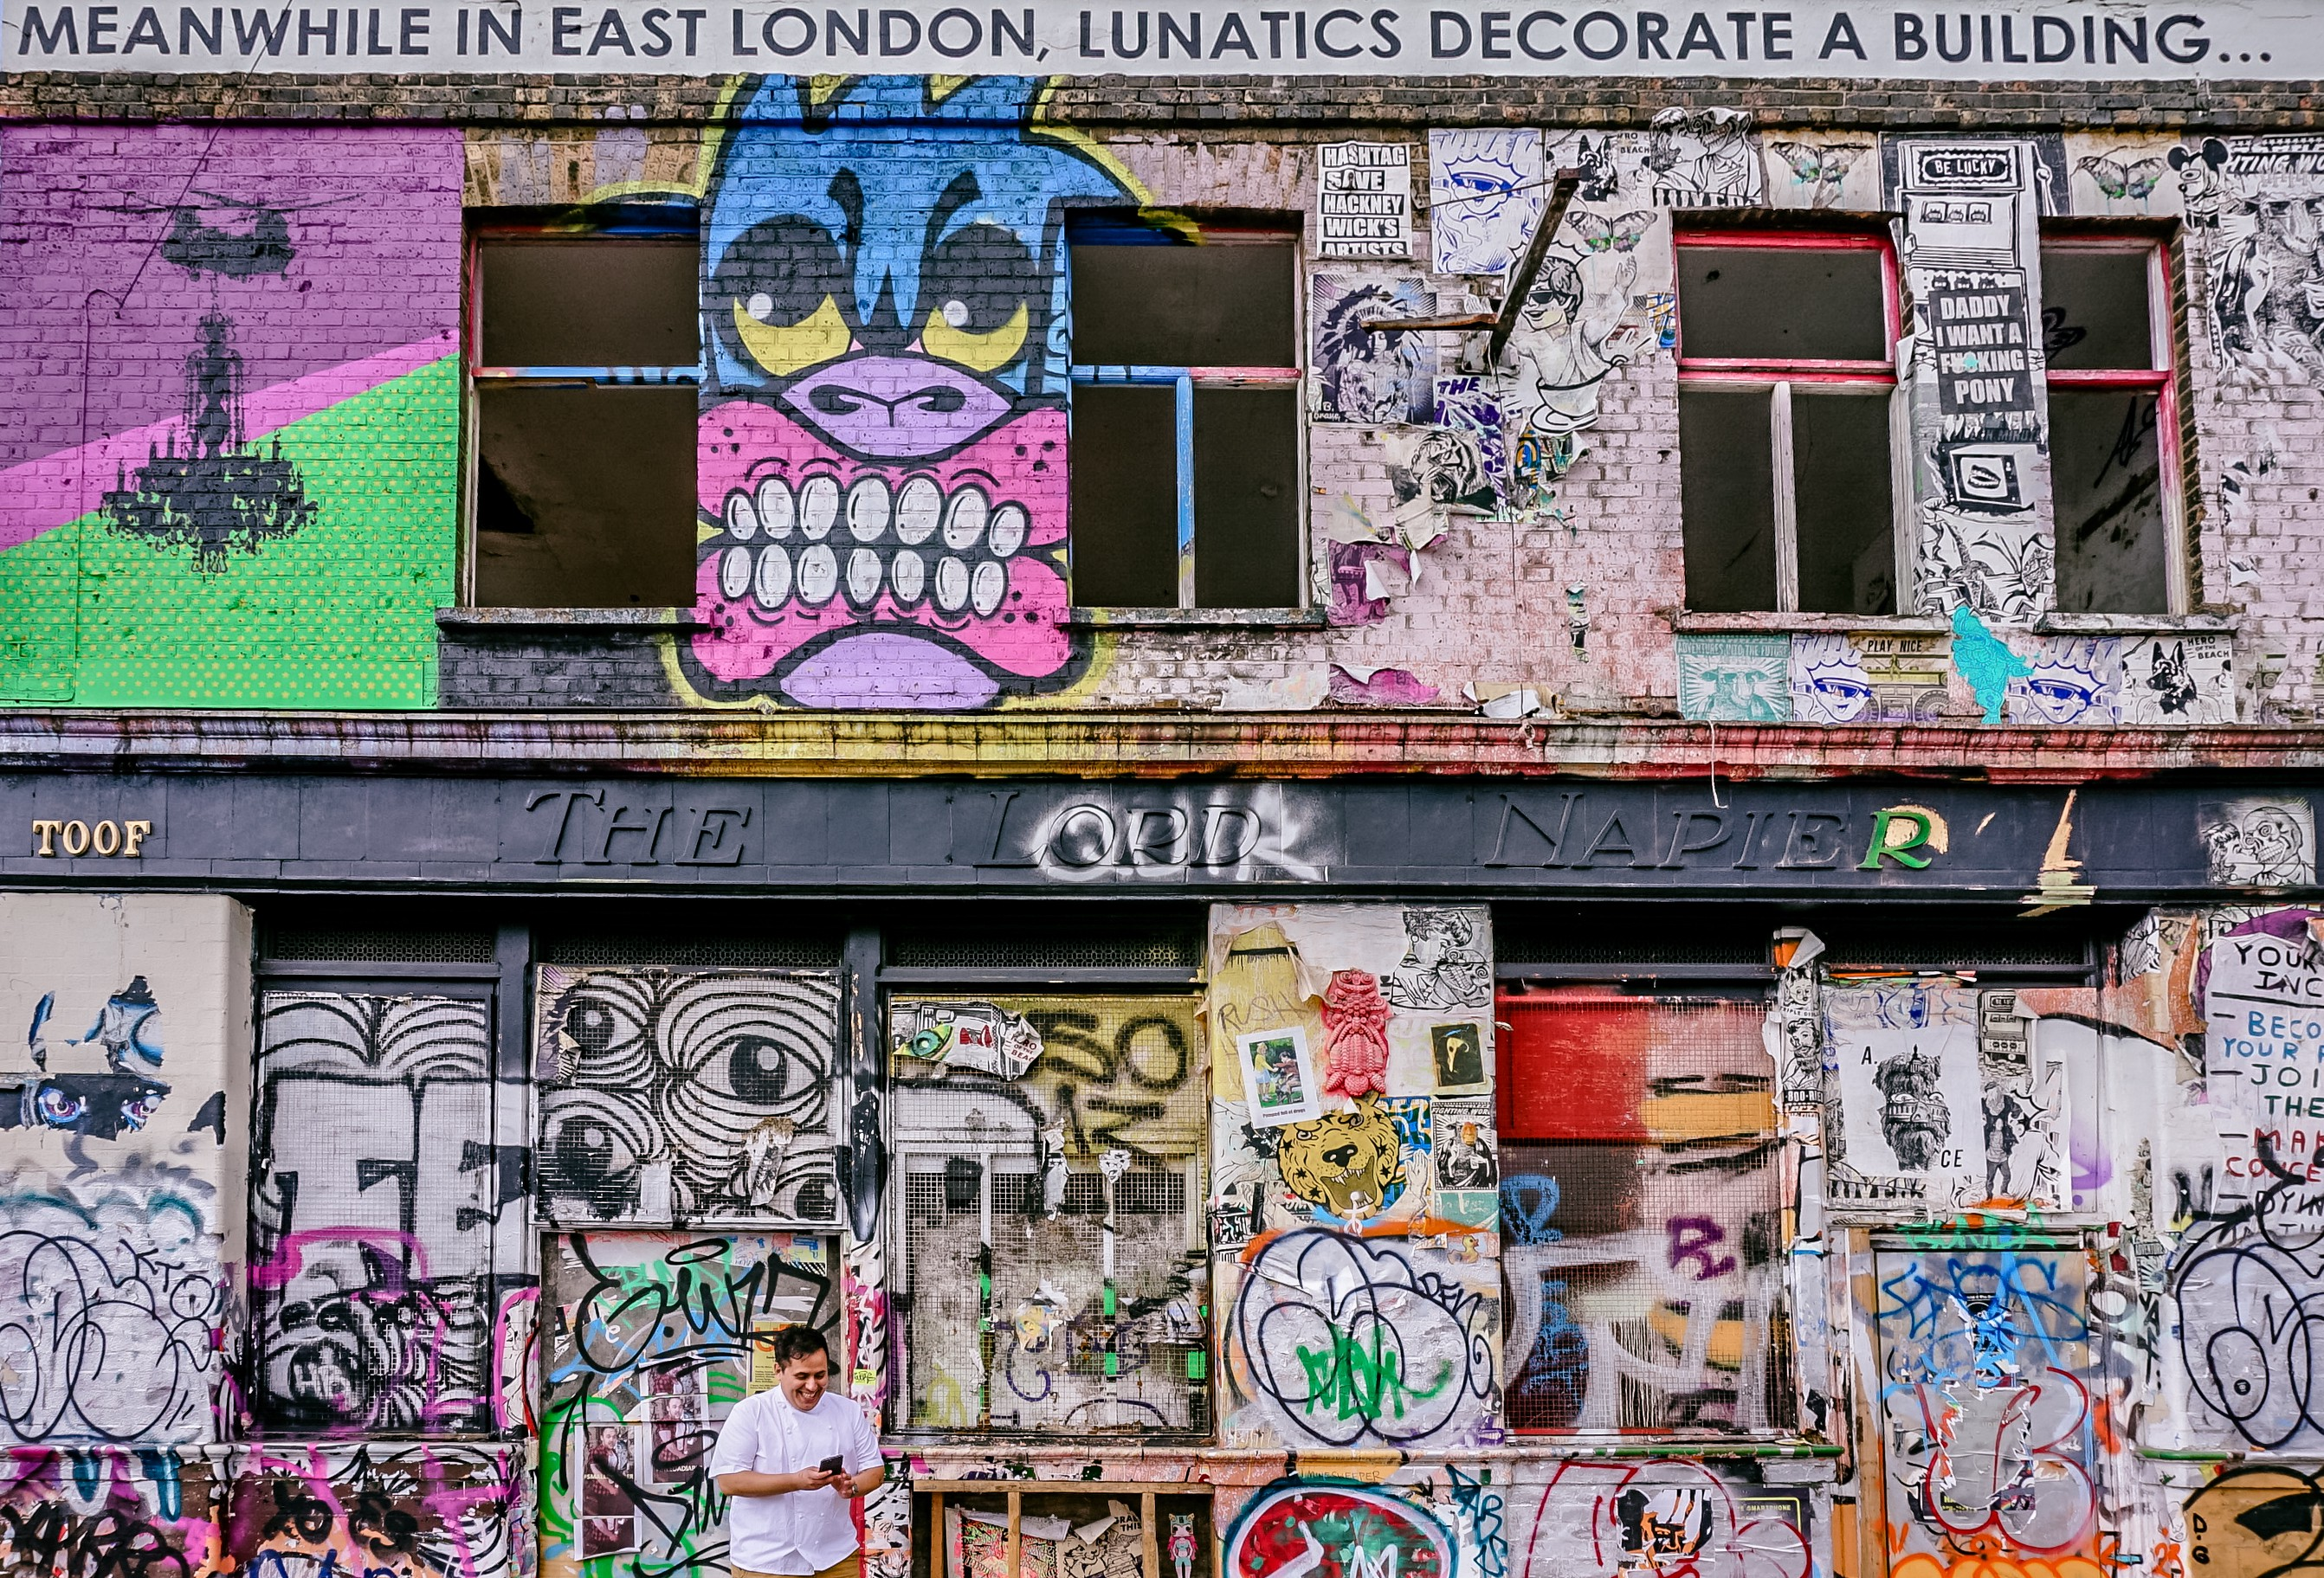 An abandoned building covered in graffiti in East London